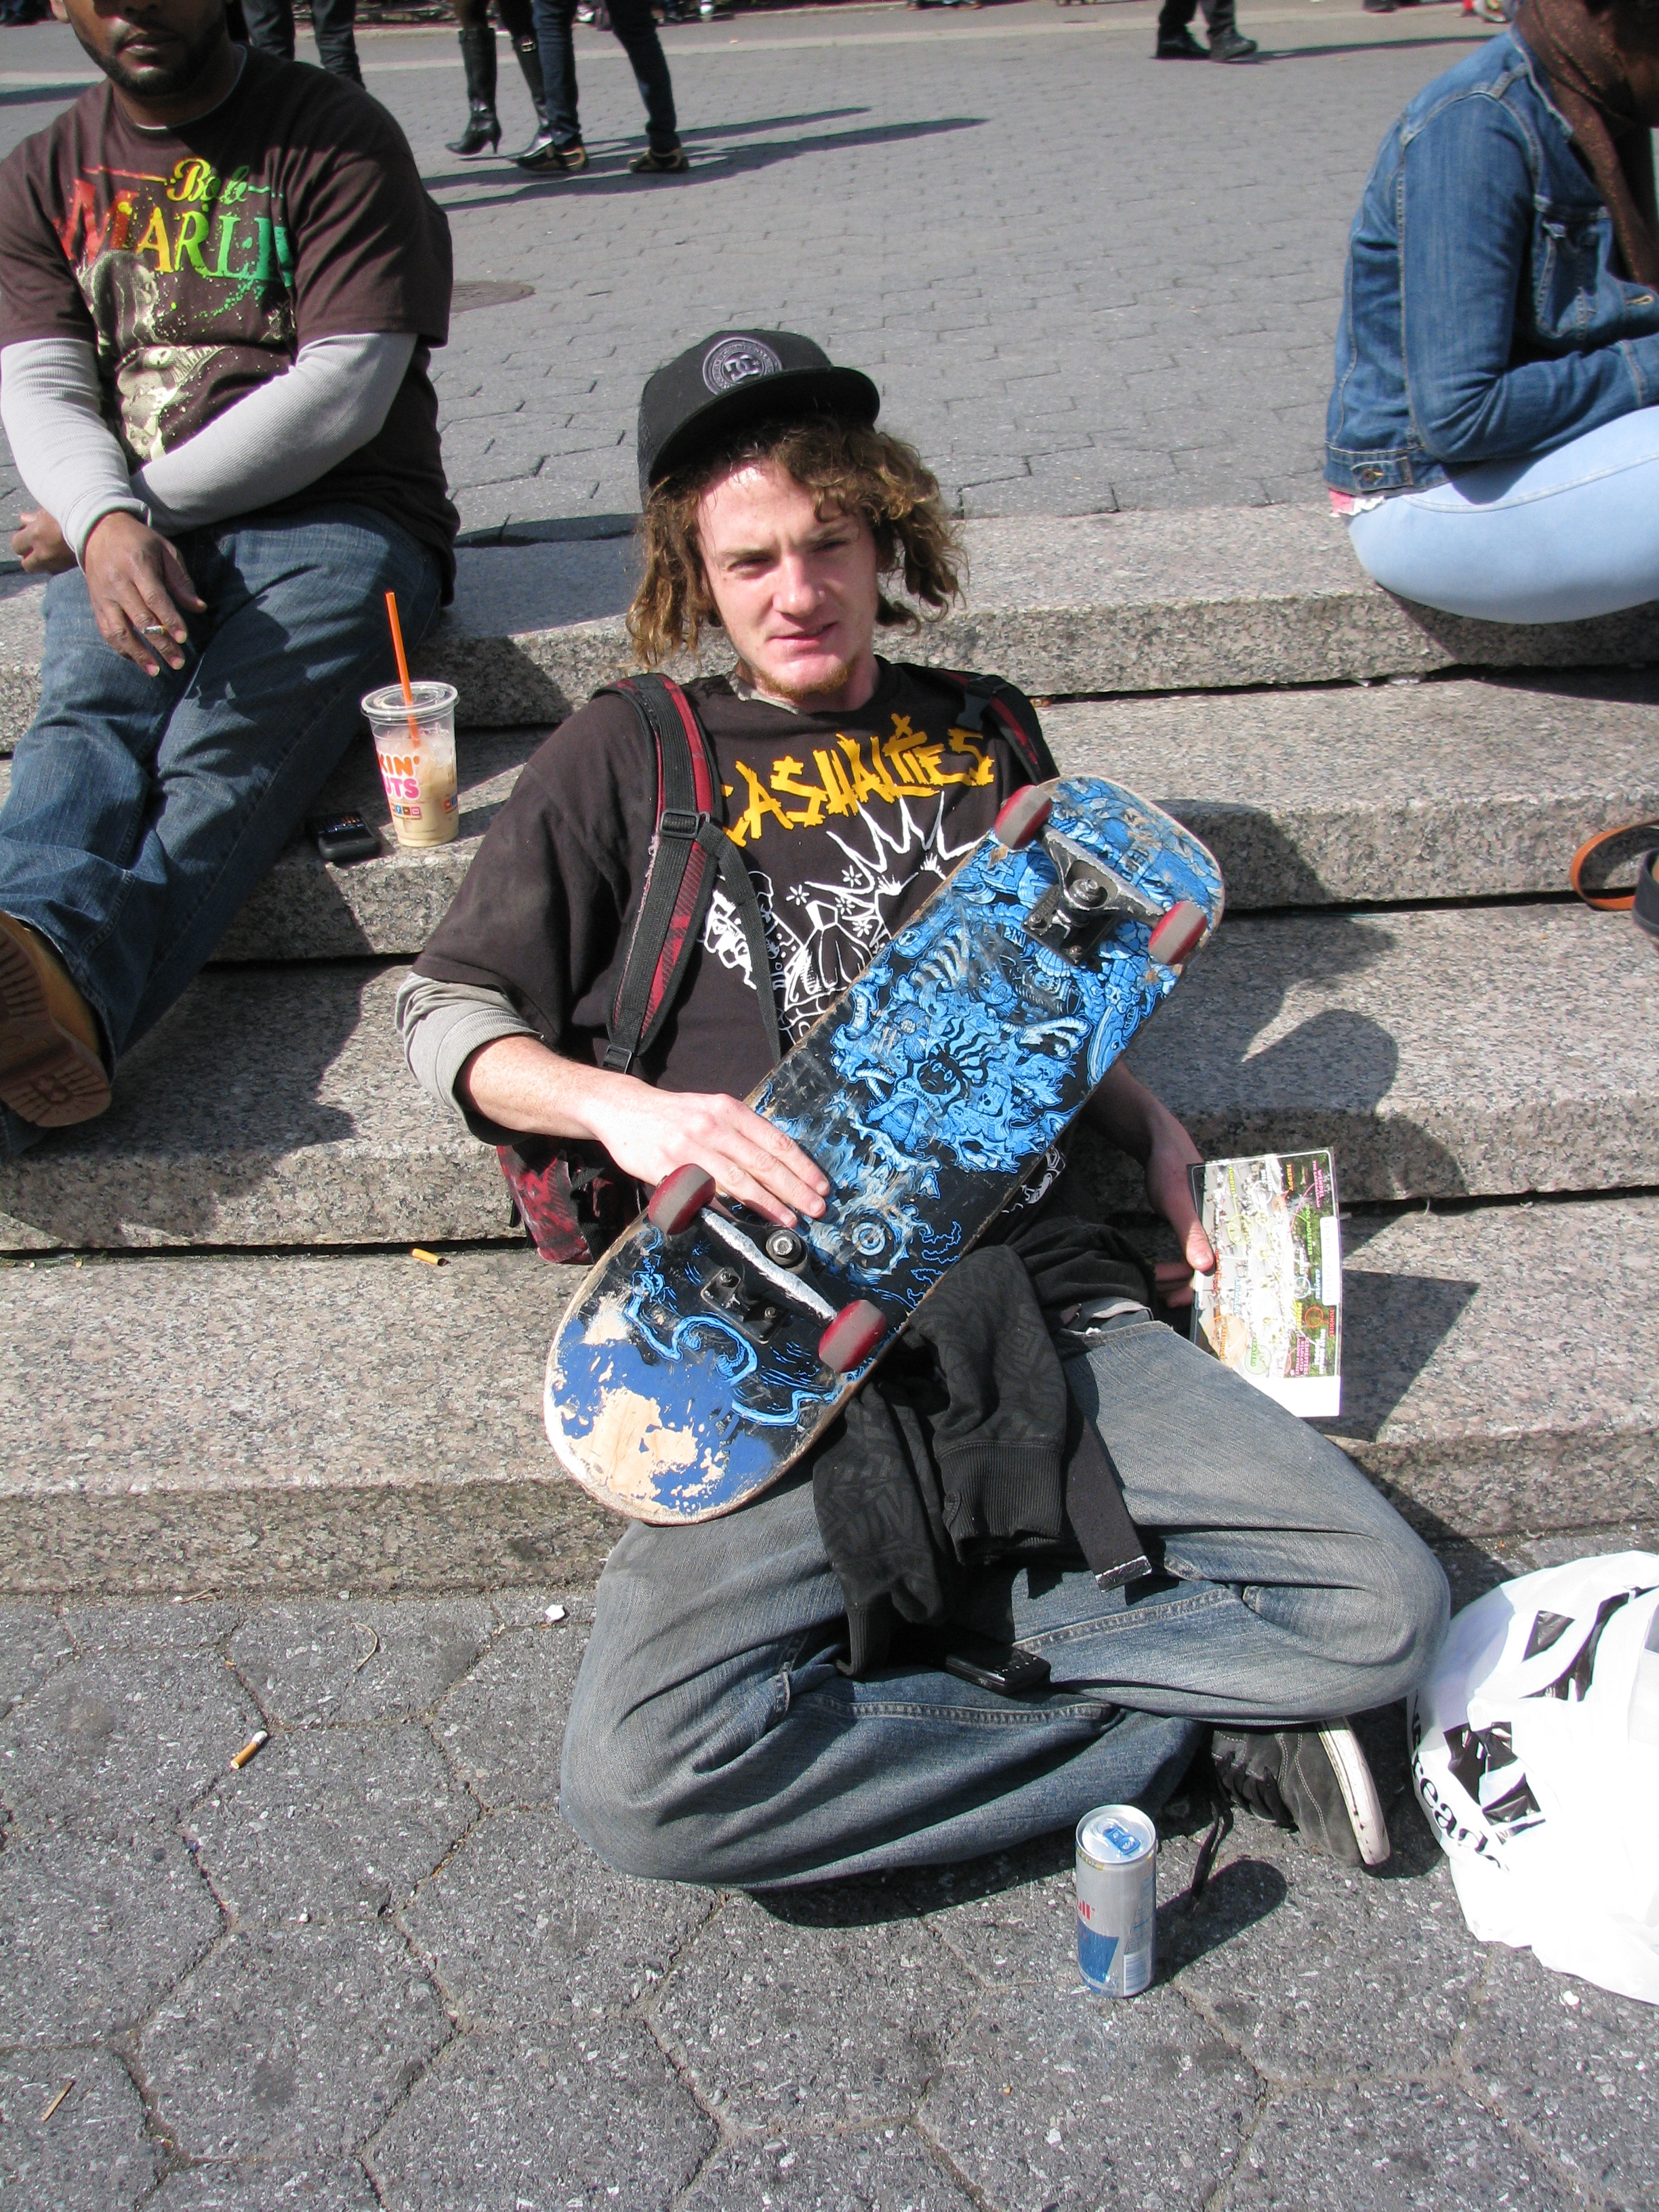 skater with dreadlocks with board